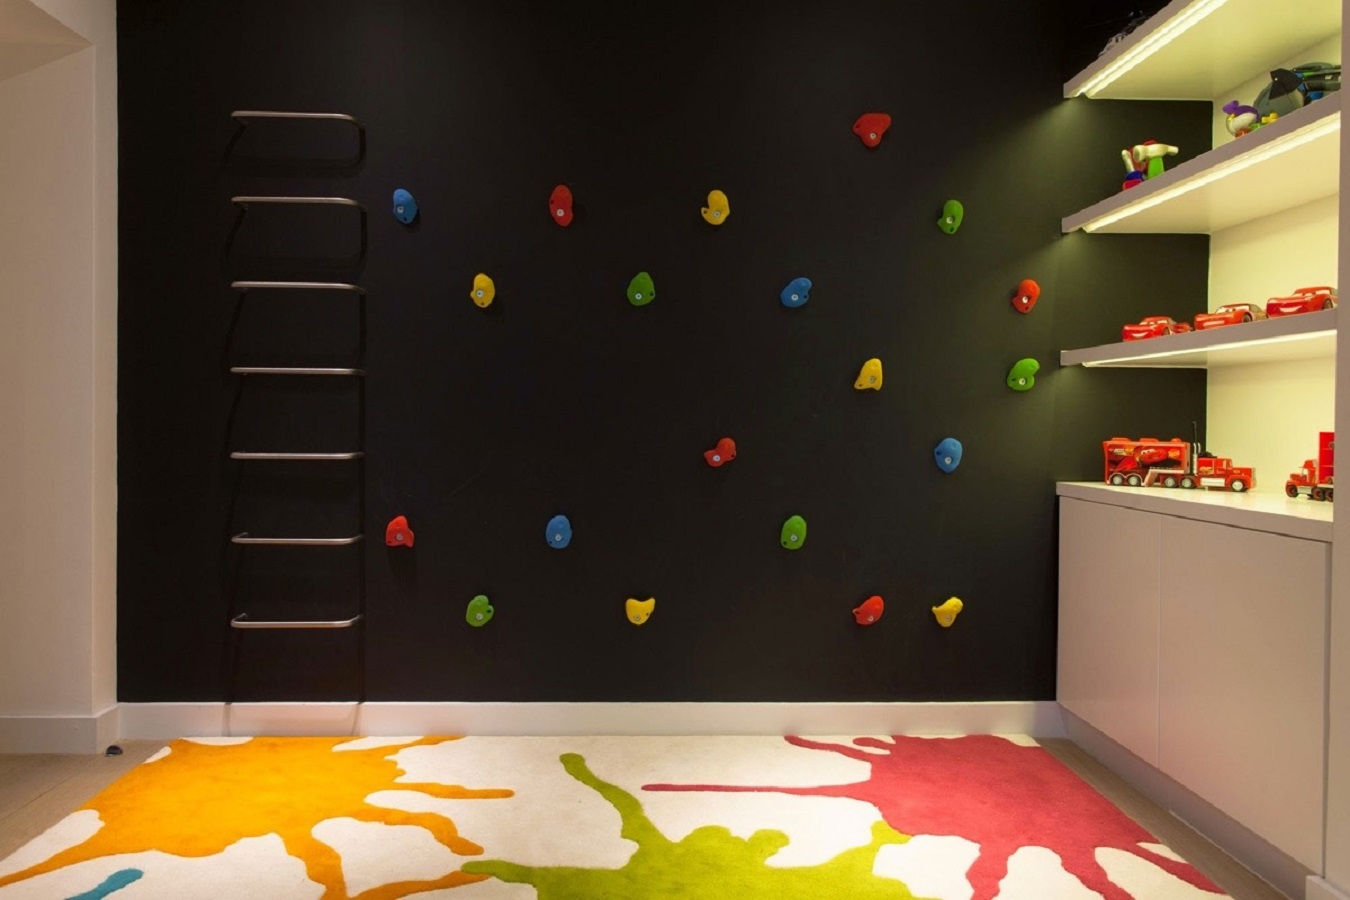 Climbing wall Funniest Kid Room Wall Decor Ideas To Create Big Creative Fresh Canvases